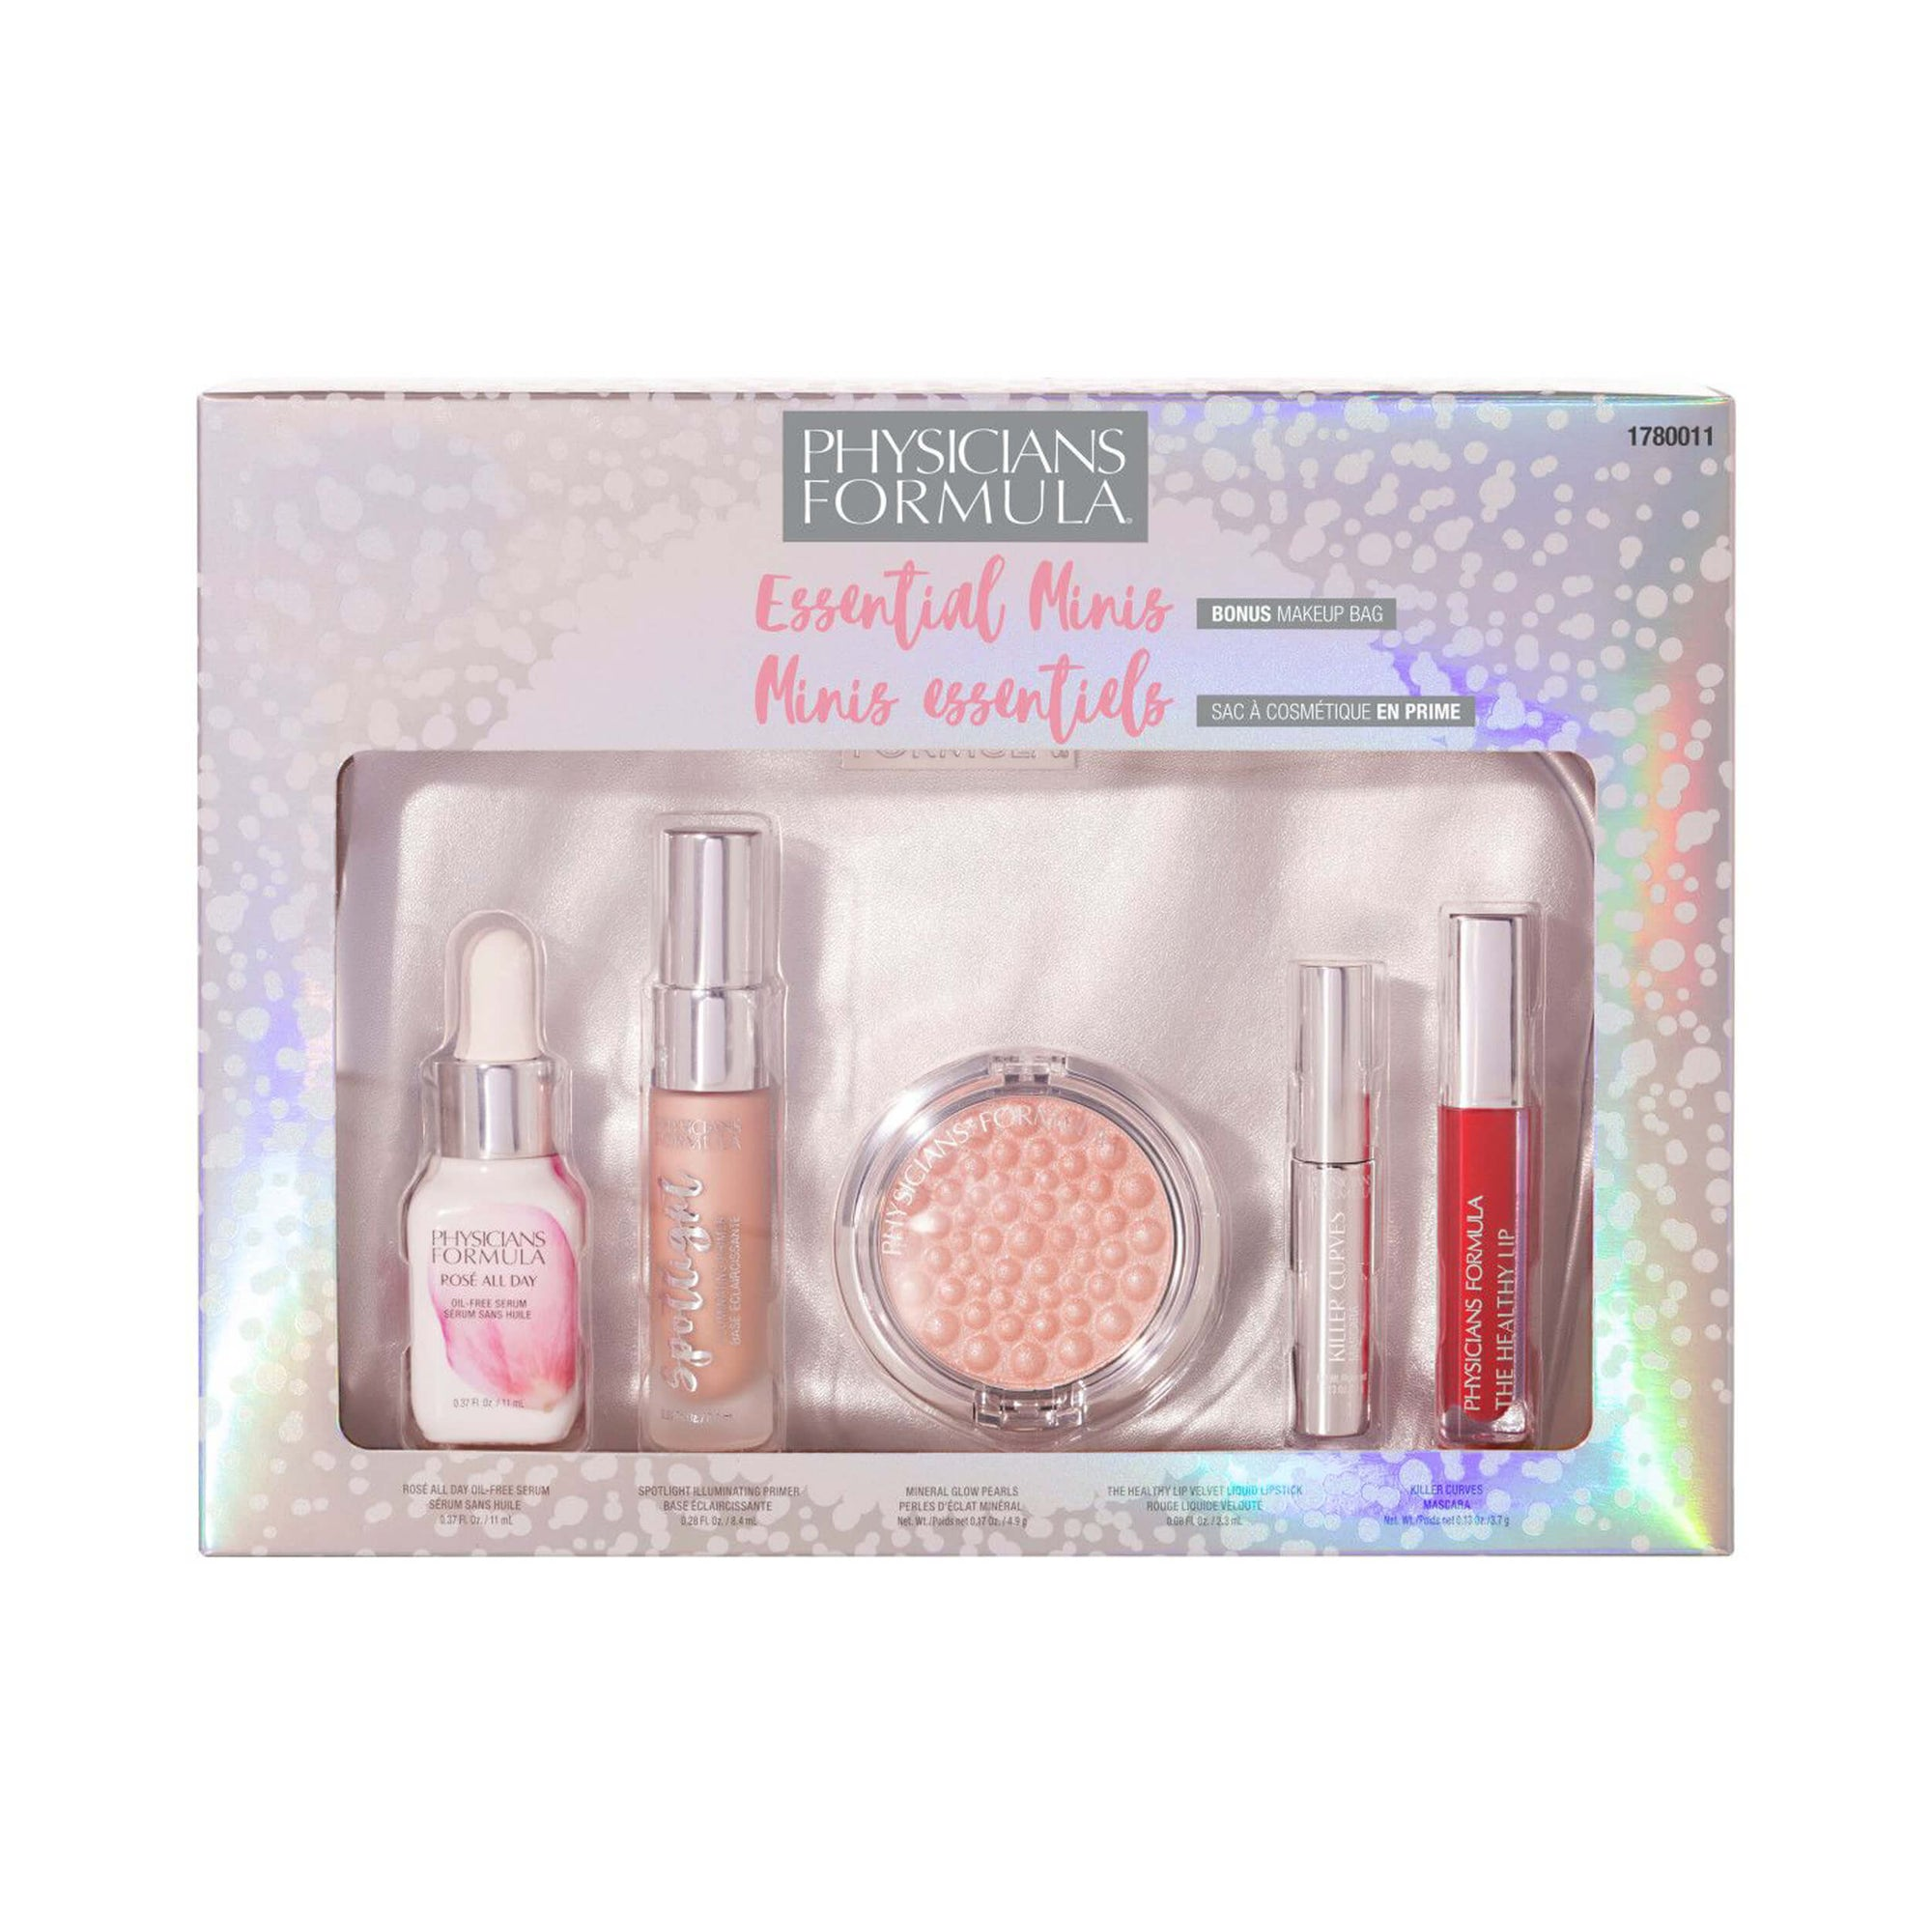 Physicians Formula Limited Edition Essential Minis Set